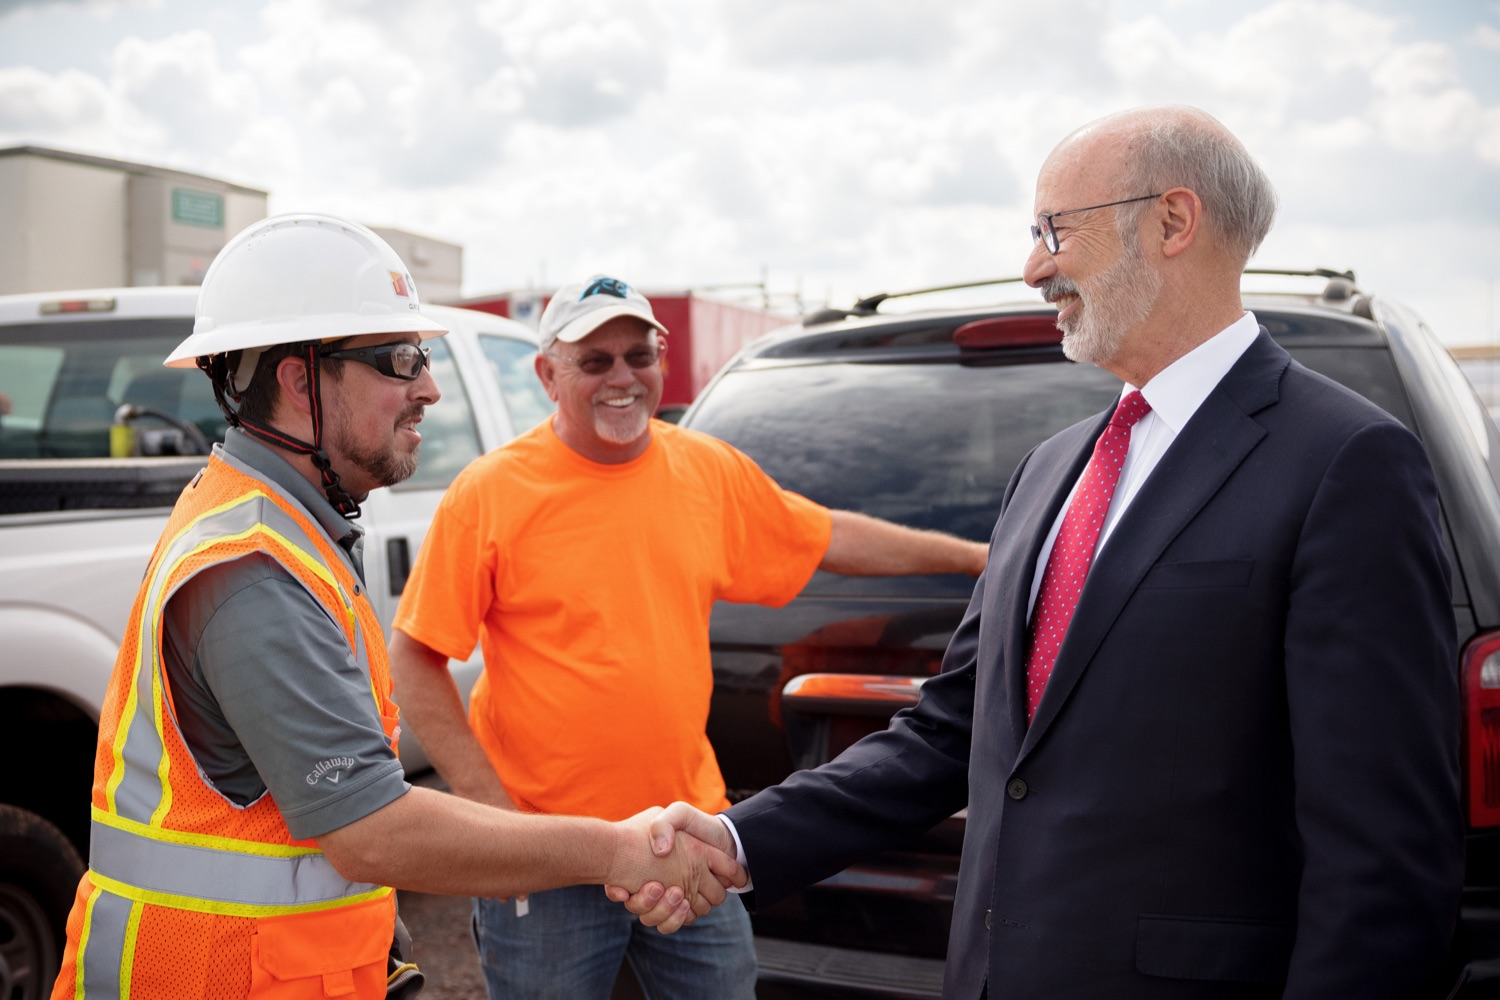 """<a href=""""https://filesource.wostreaming.net/commonwealthofpa/photo/20126_gov_economicDevelopment_dz_003.jpg"""" target=""""_blank"""">⇣Download Photo<br></a>Pennsylvania Governor Tom Wolf greeting construction workers as he tours the site.  Governor Tom Wolf joined Clemens Food Group leaders, Agriculture Secretary Russell Redding, Sen. Maria Collett, Rep. Steve Malagari and members of the Governors Action Team today to tour the construction of the companys new facility in Montgomery County. The Wolf Administration supported the project which will expand the business operations and create new jobs in the region. Hatfield, PA   October 8, 2021"""